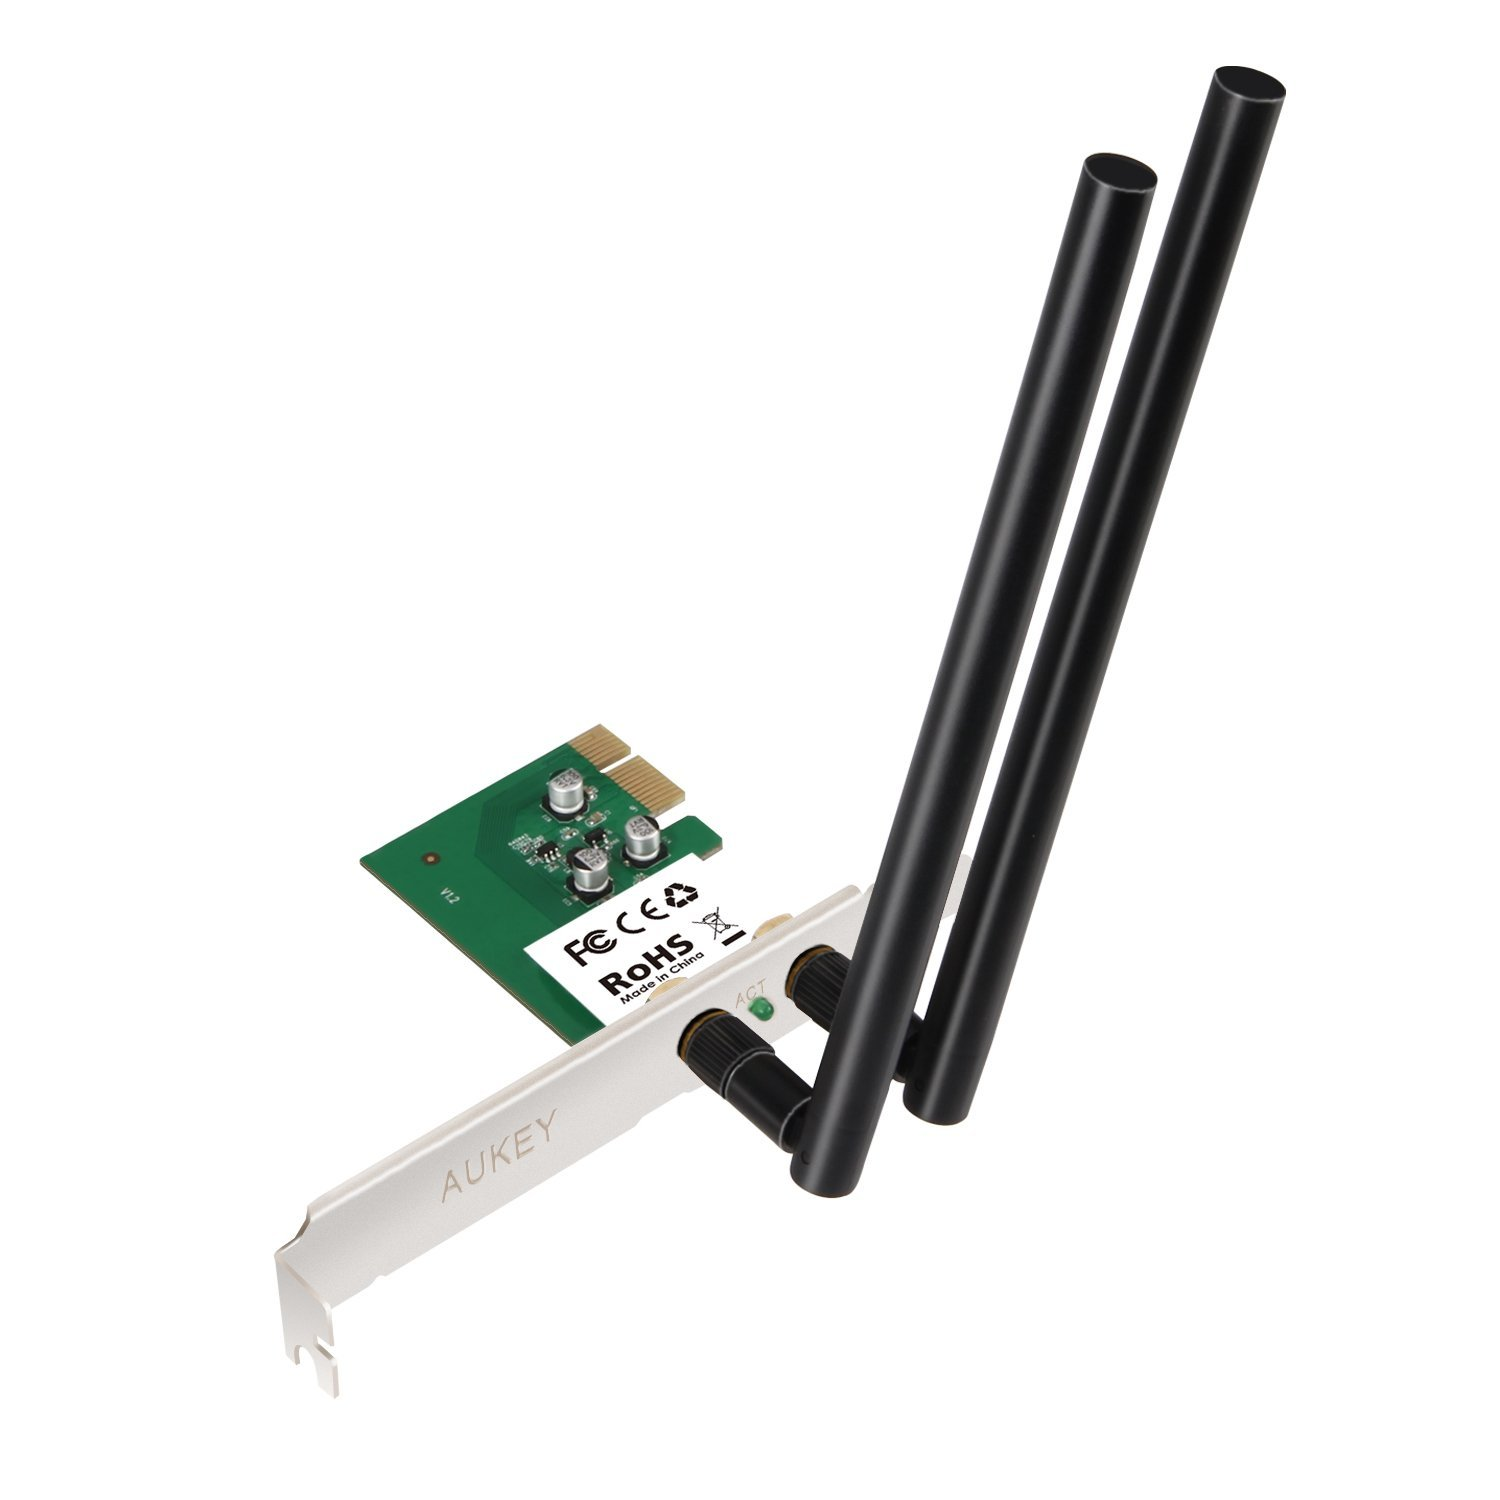 AUKEY PCIE  AC1200 Wireless Dual Band PCI Express Adapter